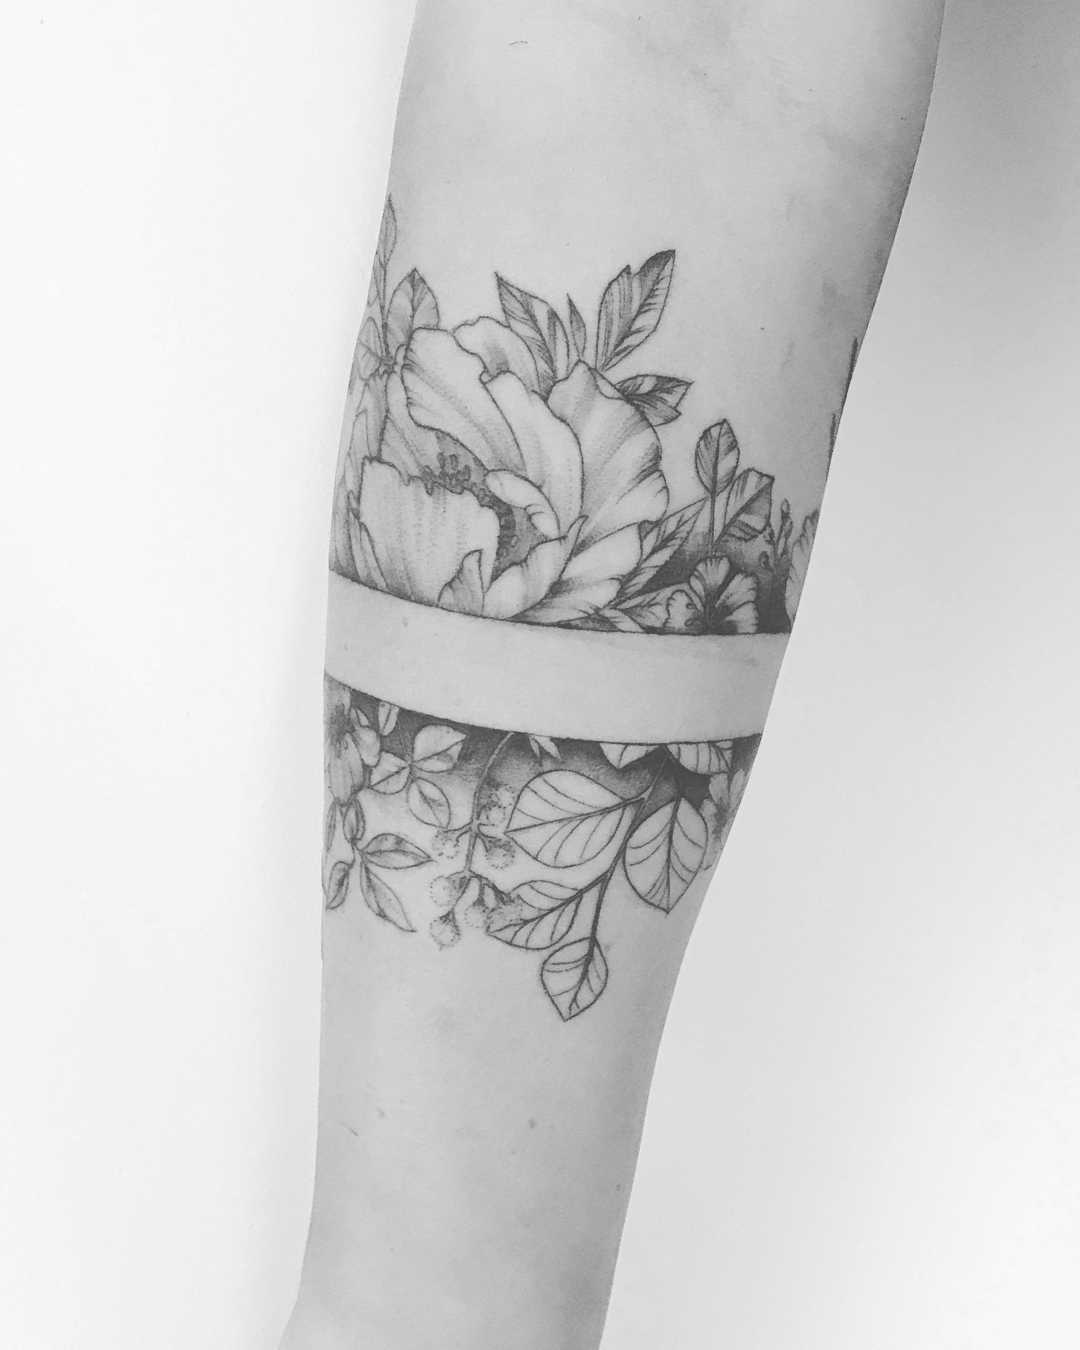 Floral armband tattoo by Annelie Fransson